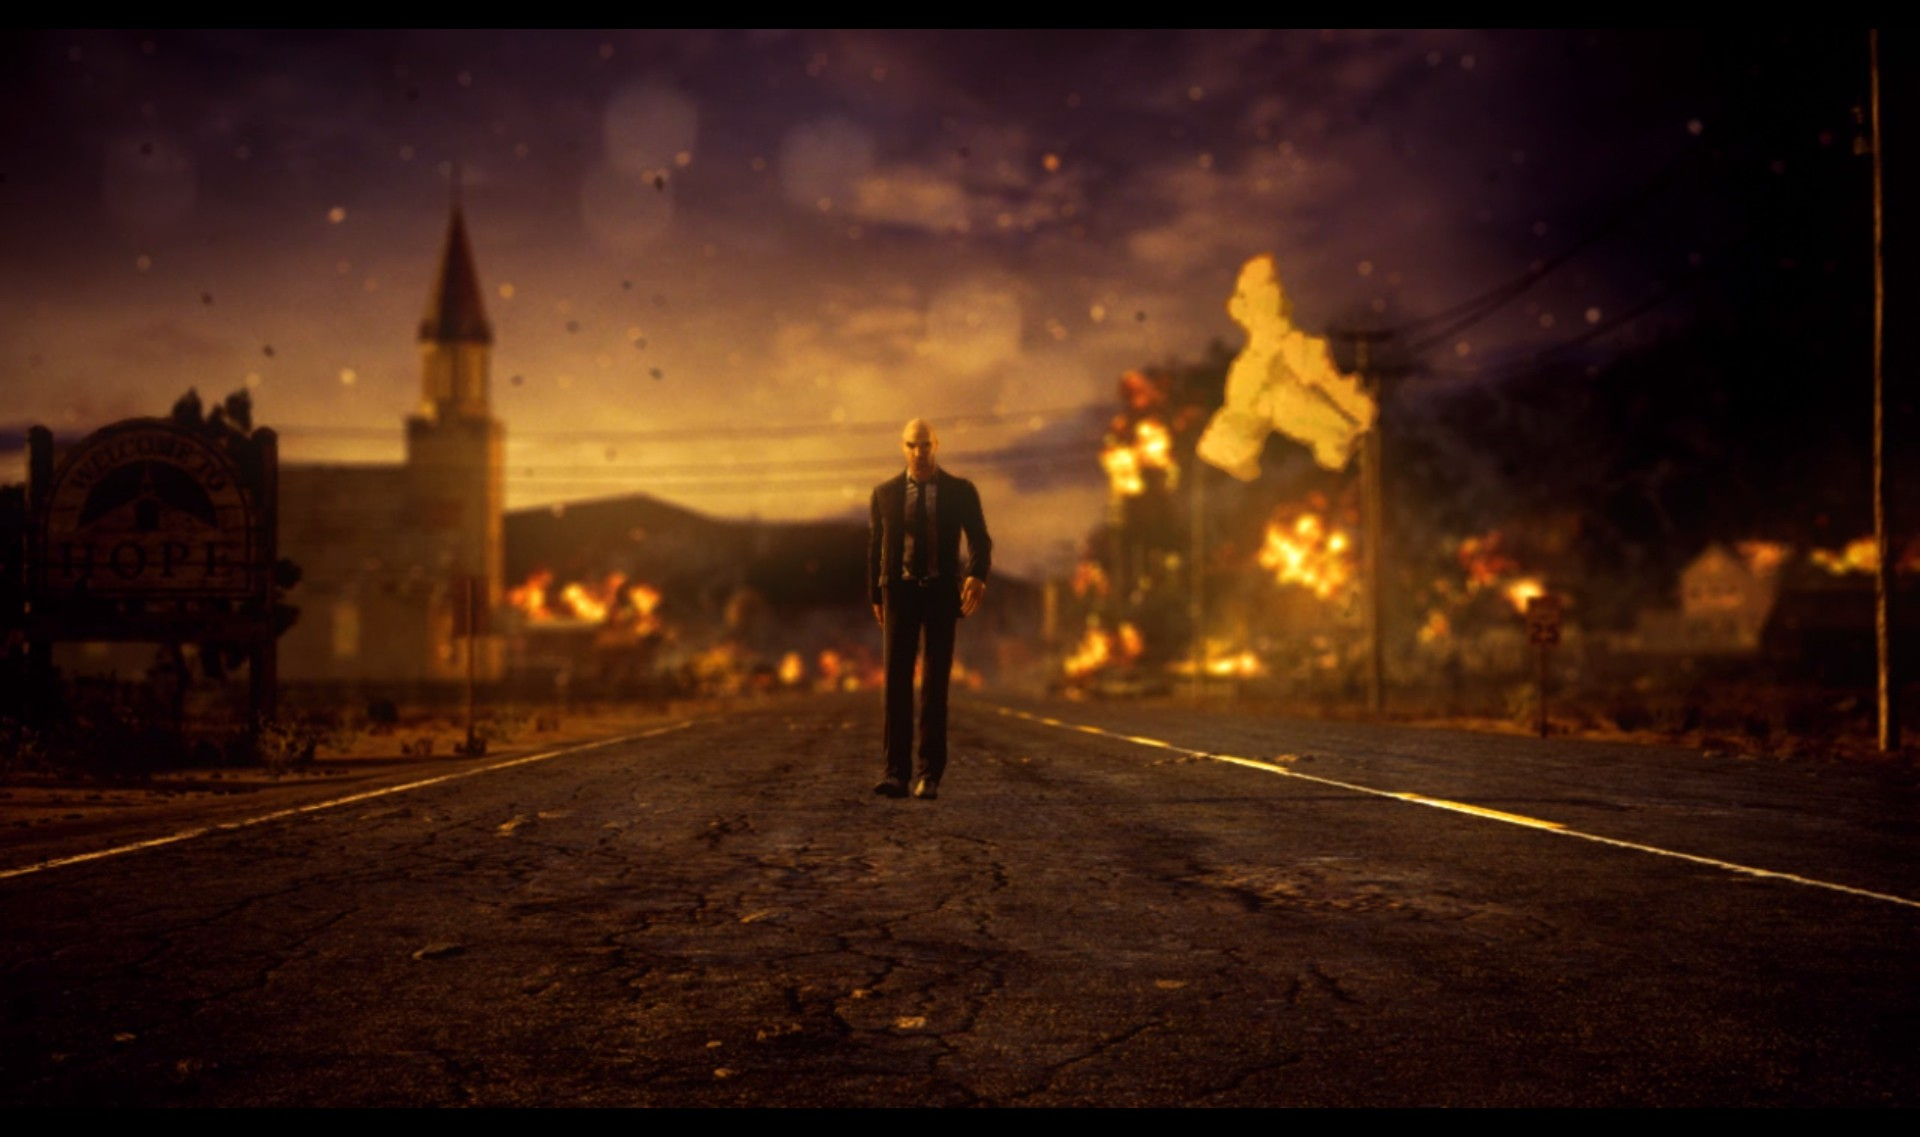 An Assassin With a Soul? A Short Review of 'Hitman: Absolution